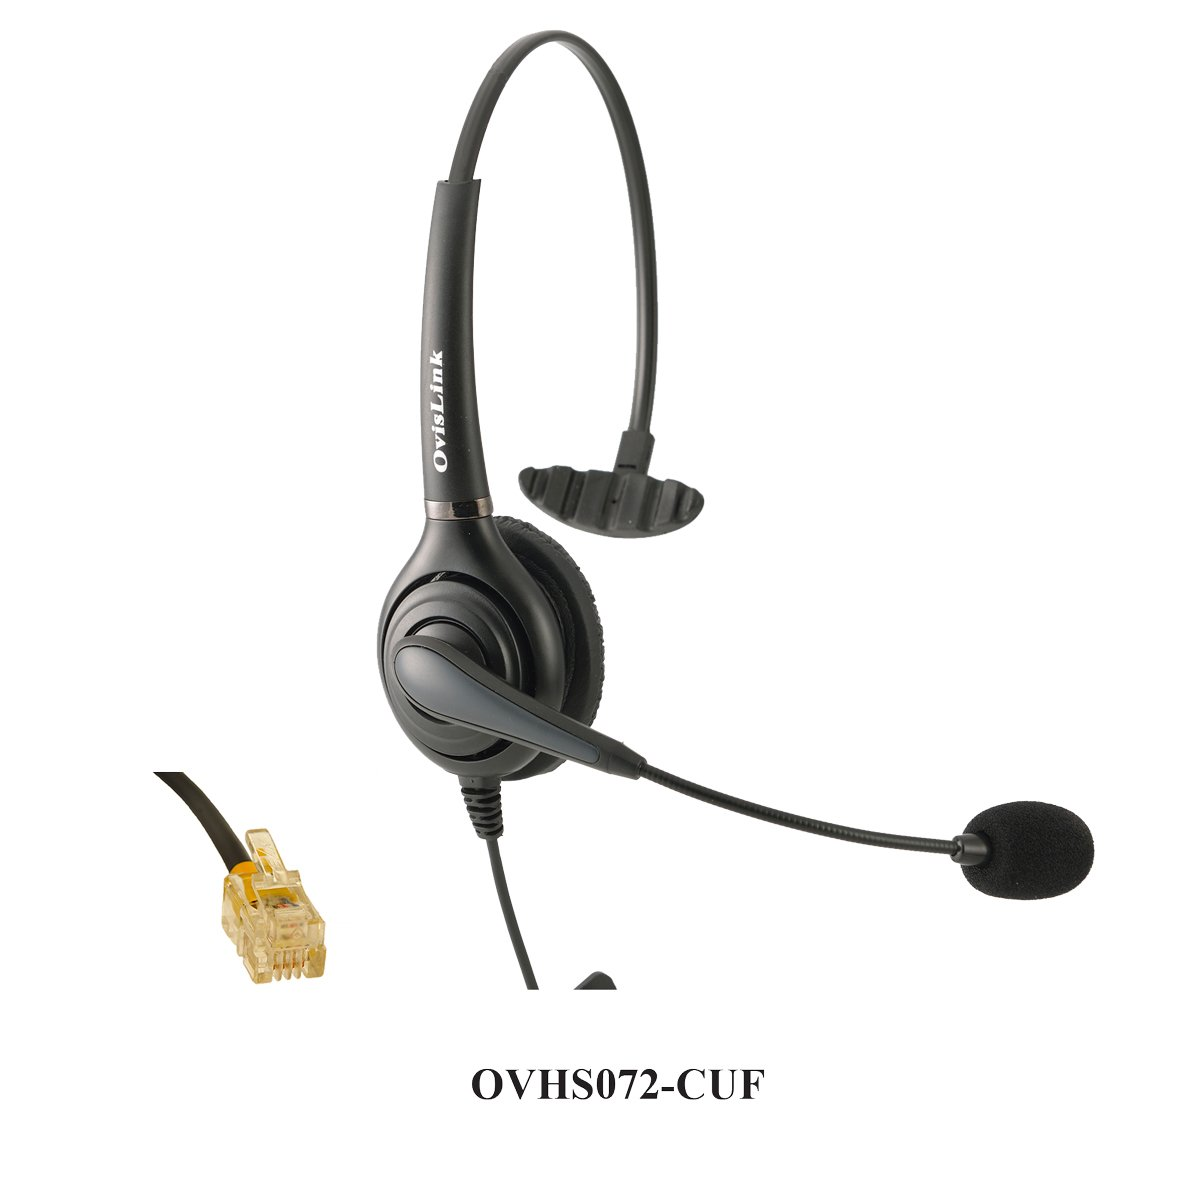 OvisLink corded Cisco Headset   Noise Cancelling Microphone headset compatible with Cisco phones with RJ9 headset jack   RJ9 headset Quick Disconnect cord included   2 Years Warranty